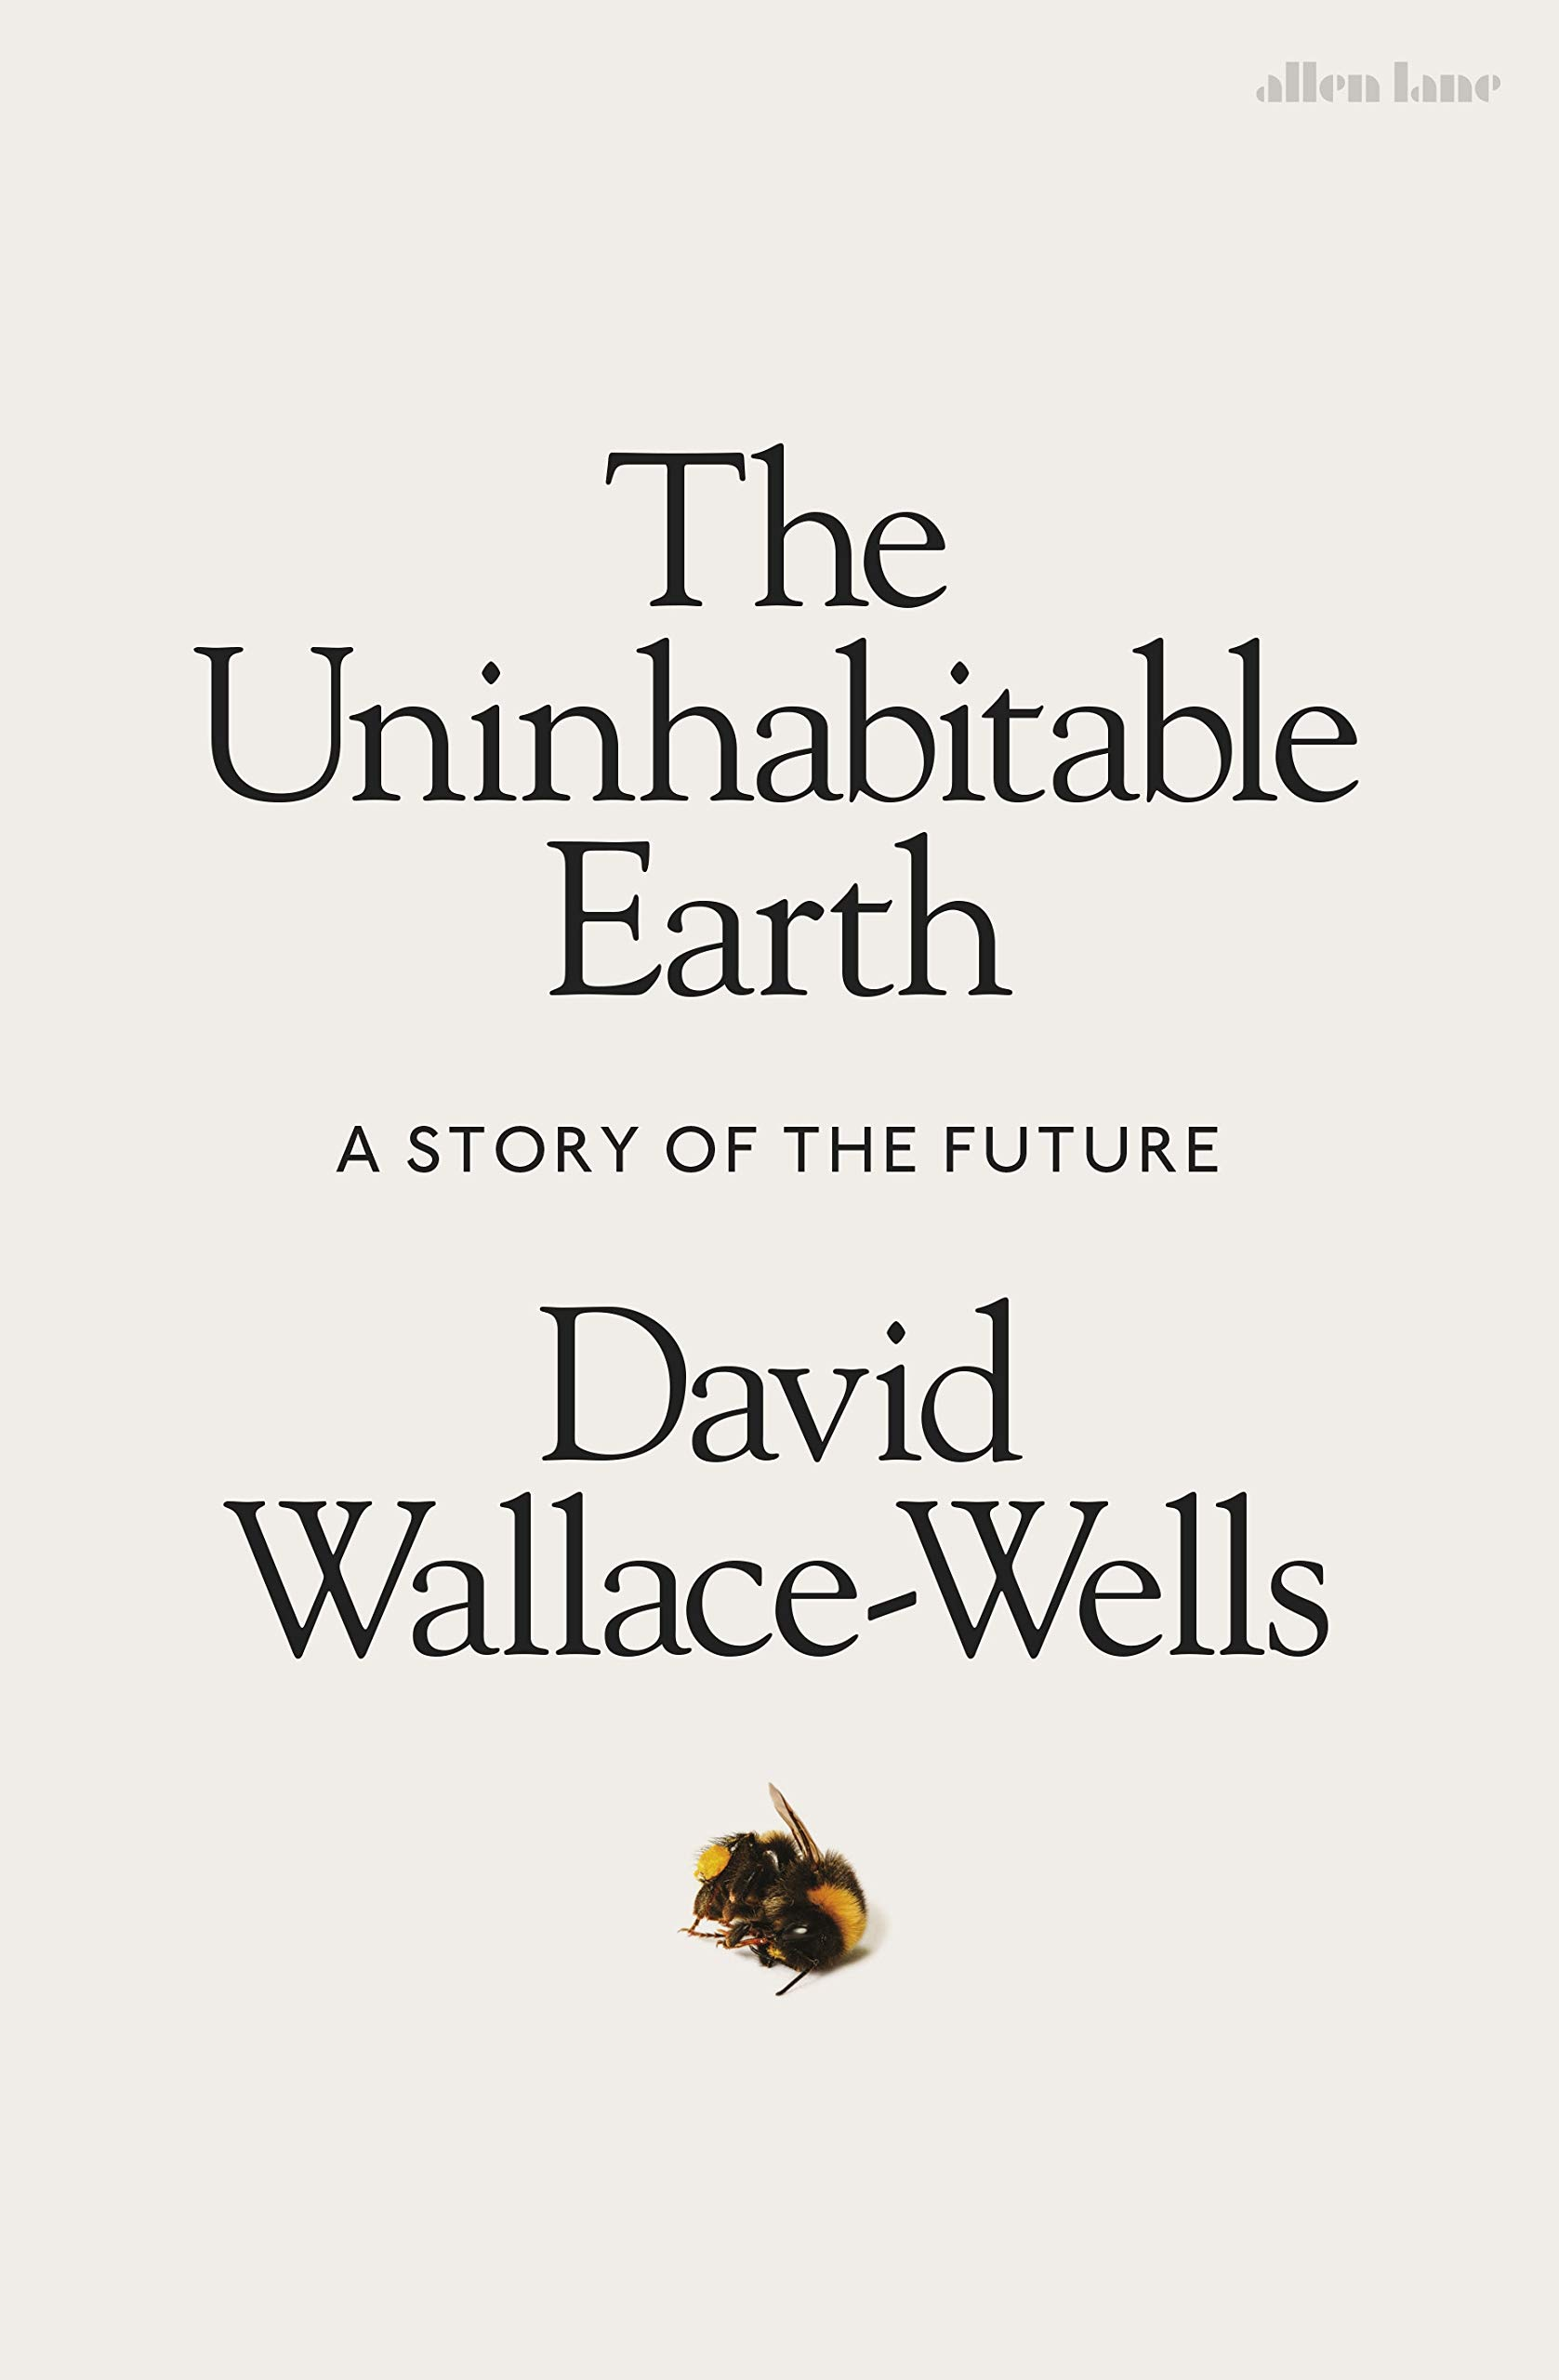 The Uninhabitable Earth: A Story of the Future: Amazon.co.uk: Wallace-Wells,  David: 9780241355213: Books